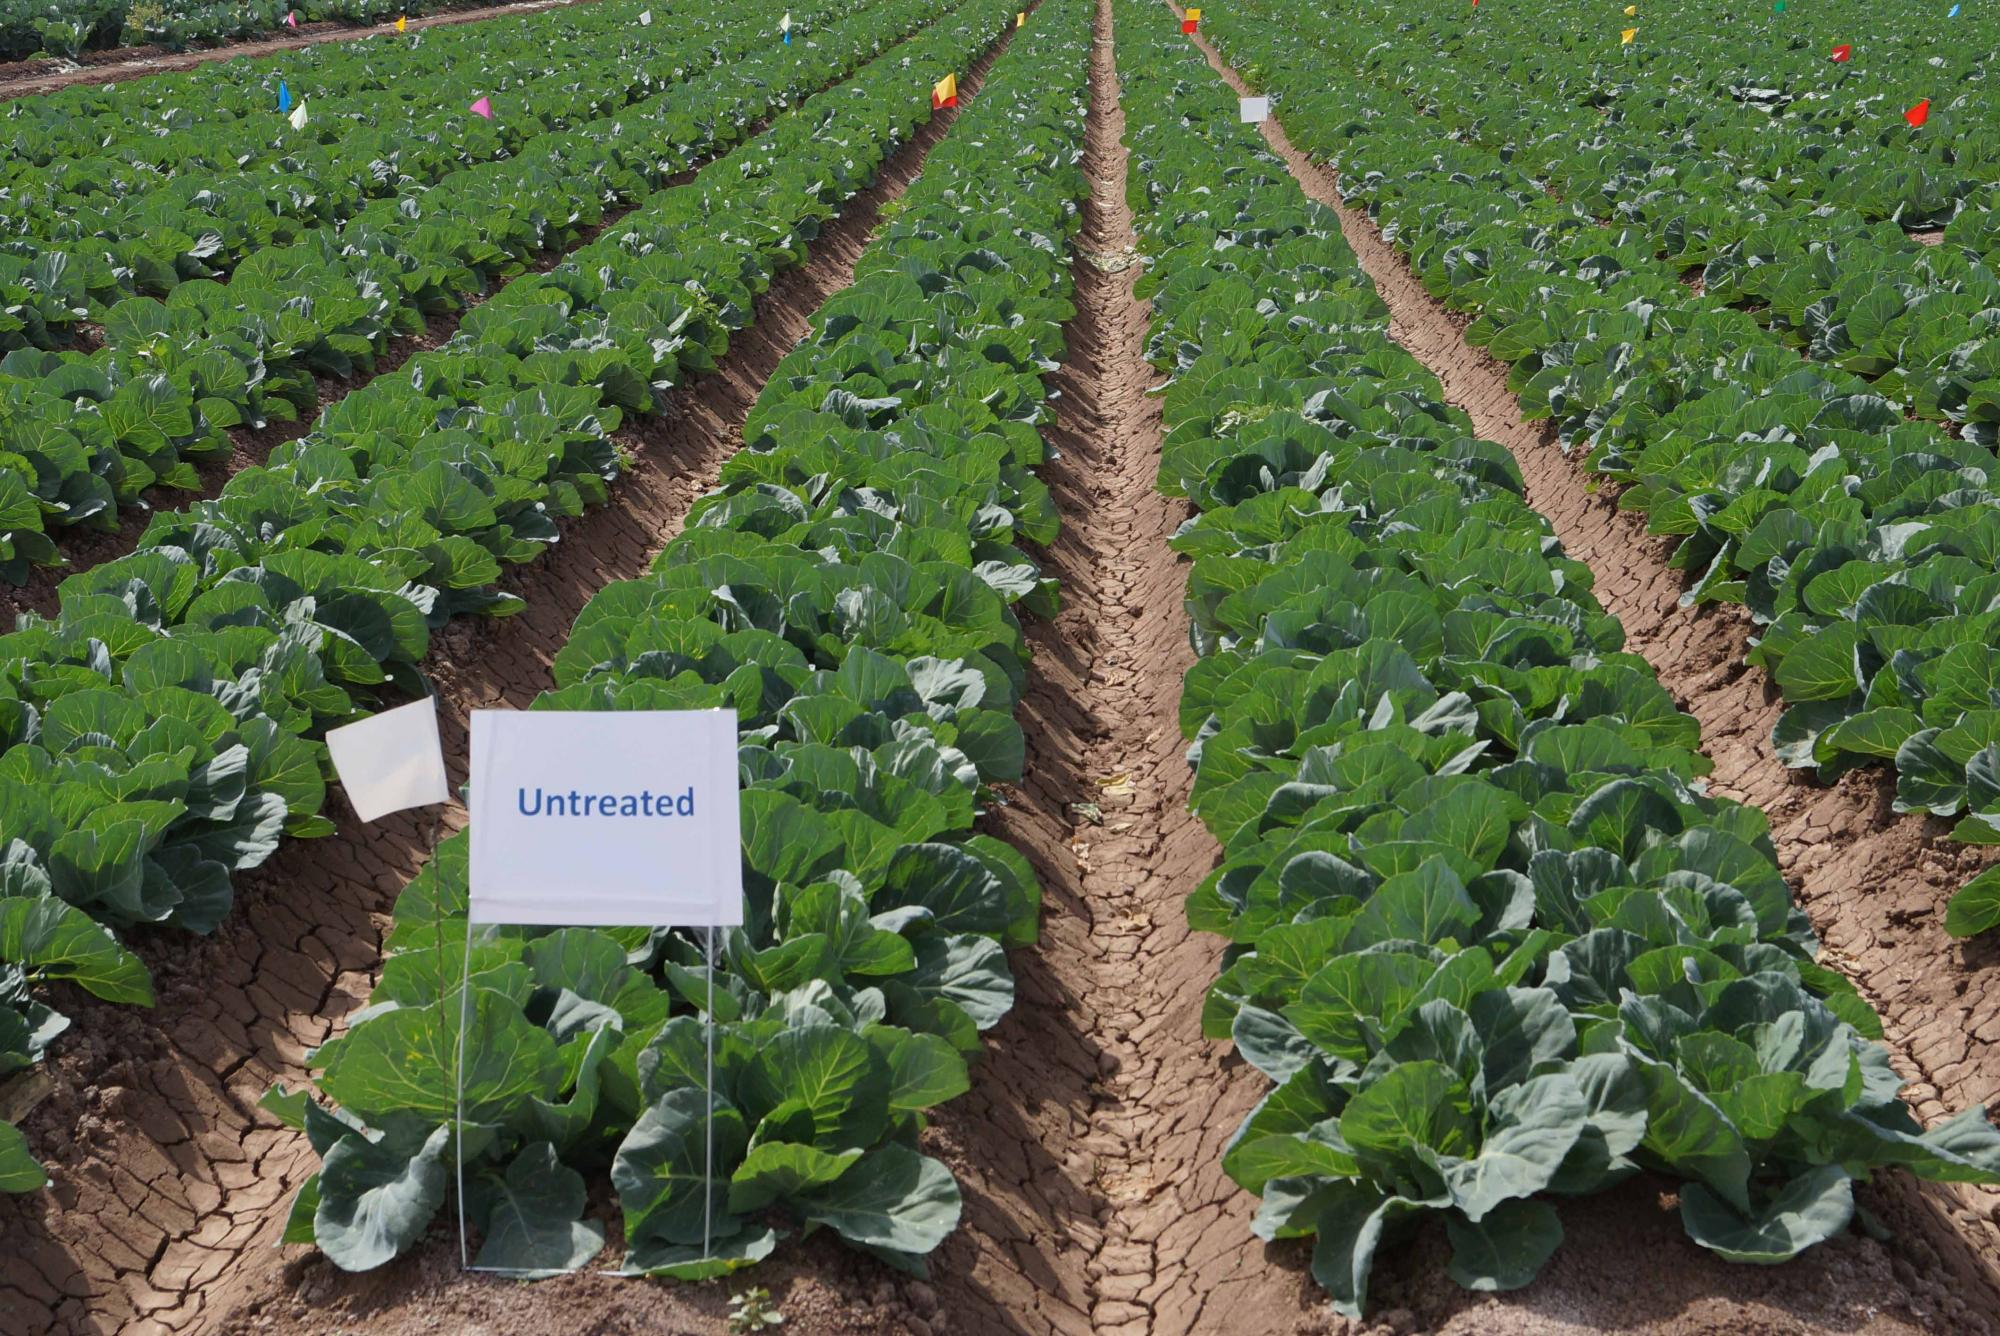 Untreated plots of green cabbage in a trial designed to evaluate several new reduced-risk insecticides against green peach aphids.